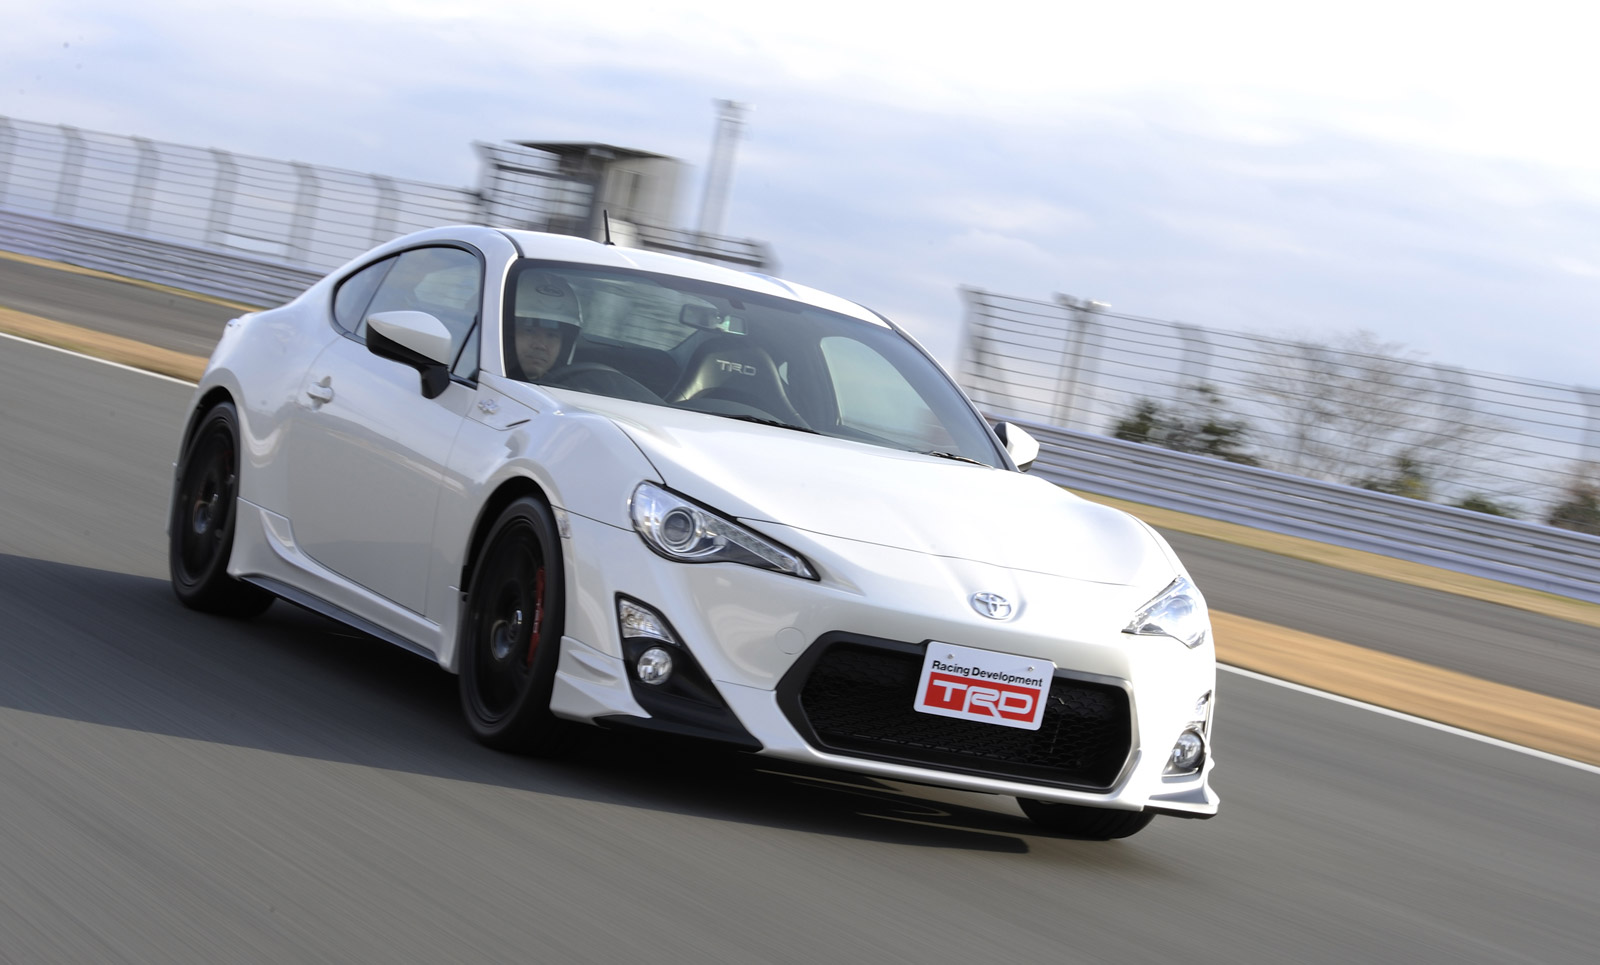 trd gt 86 to lead toyota offensive at 2012 tokyo auto salon. Black Bedroom Furniture Sets. Home Design Ideas